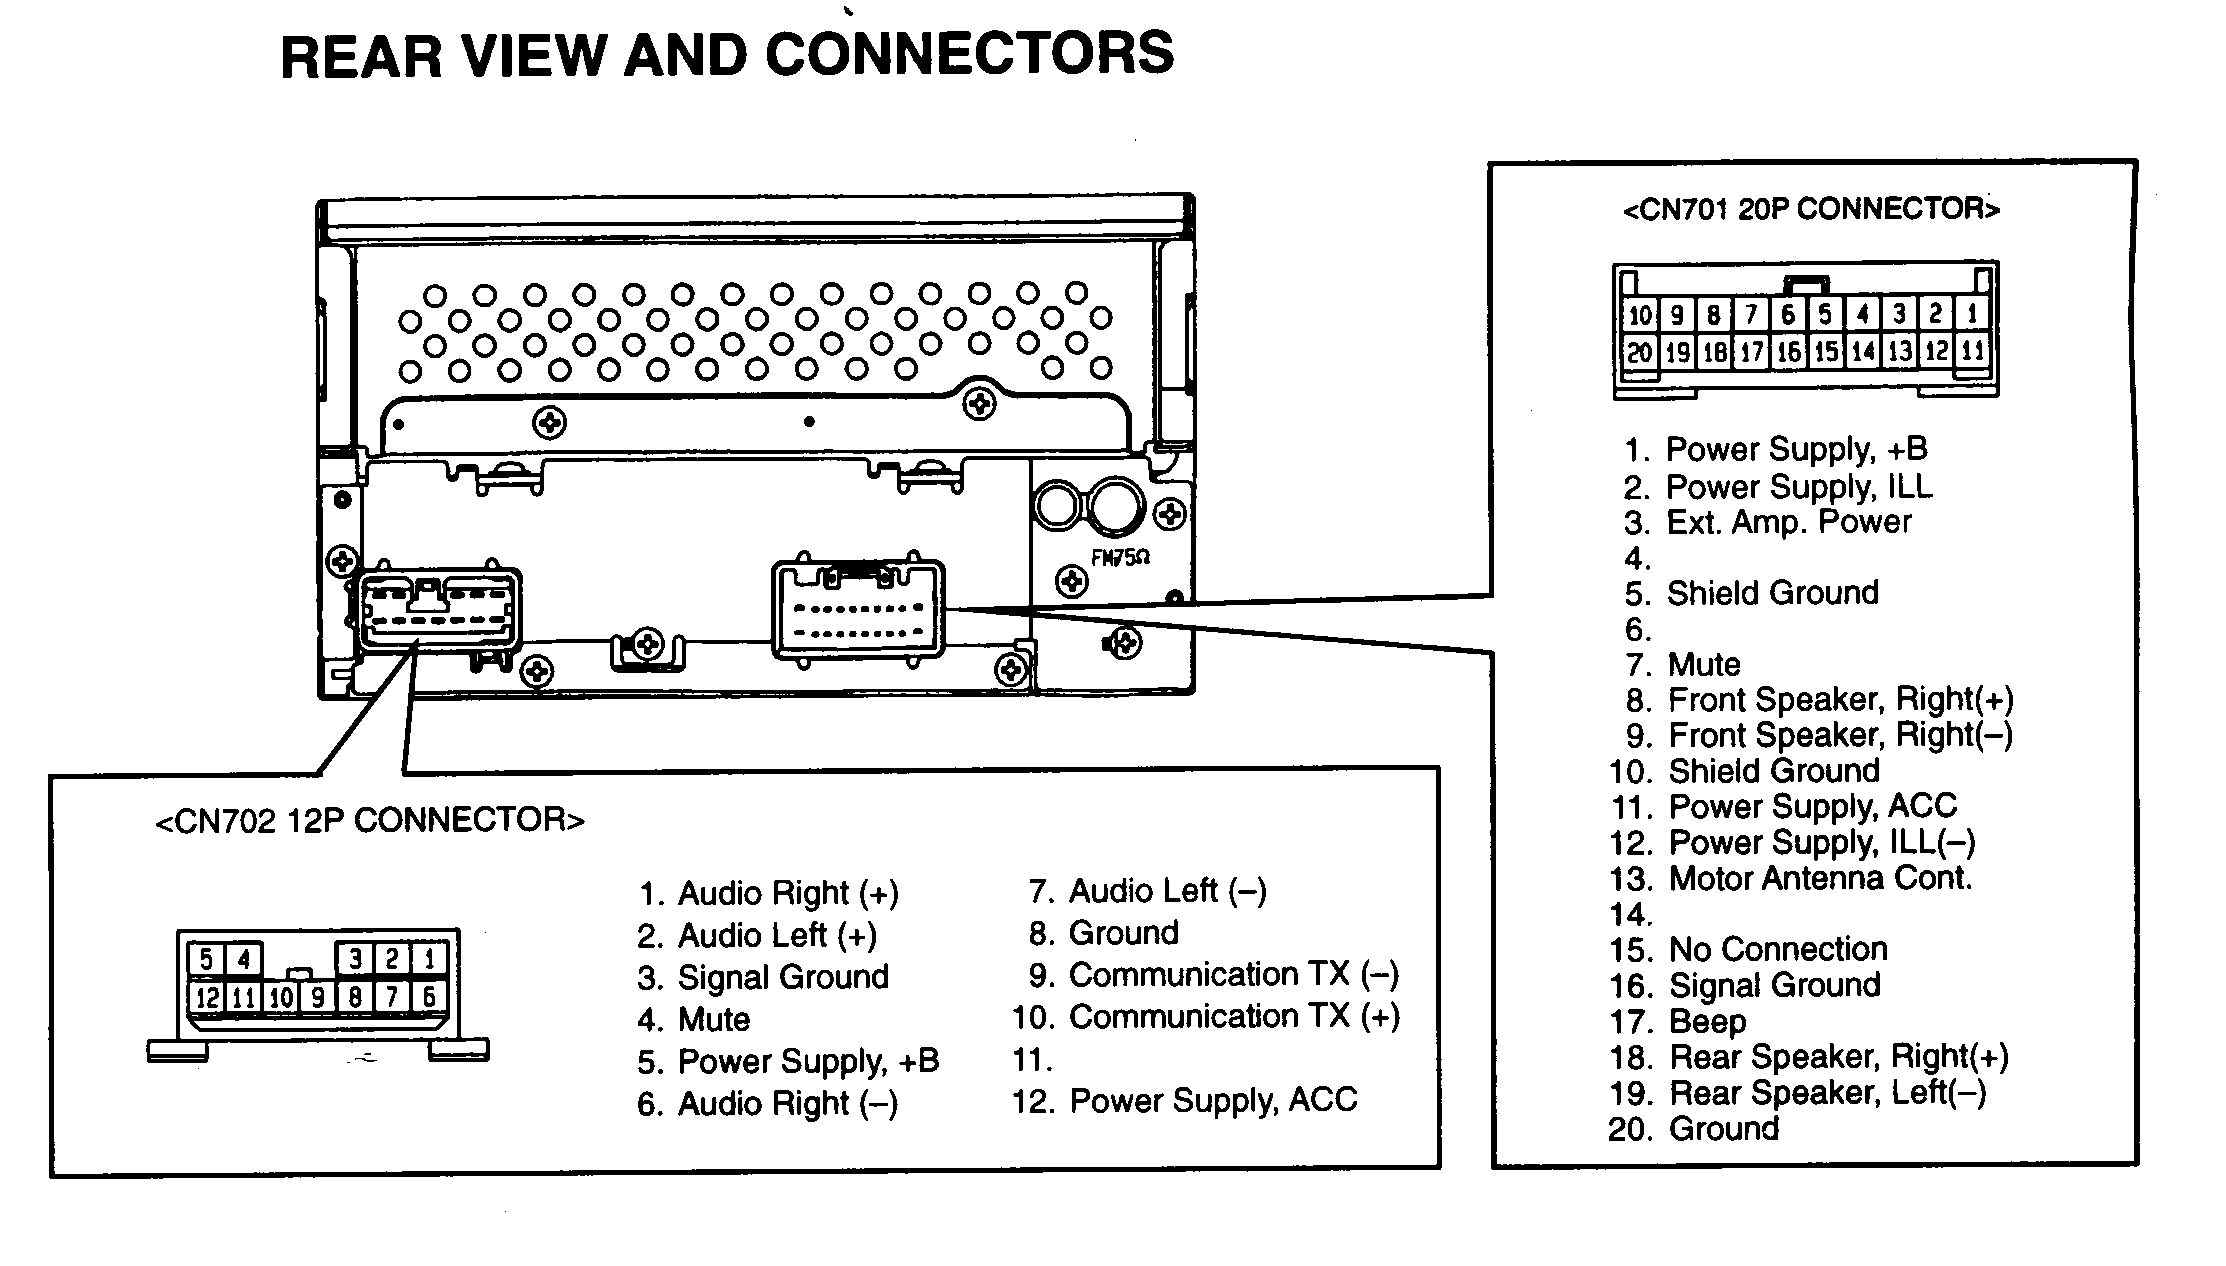 WireHarnessToyota03210201 toyota stereo wiring diagram toyota wiring diagrams instruction 1994 toyota camry radio wiring diagram at bayanpartner.co